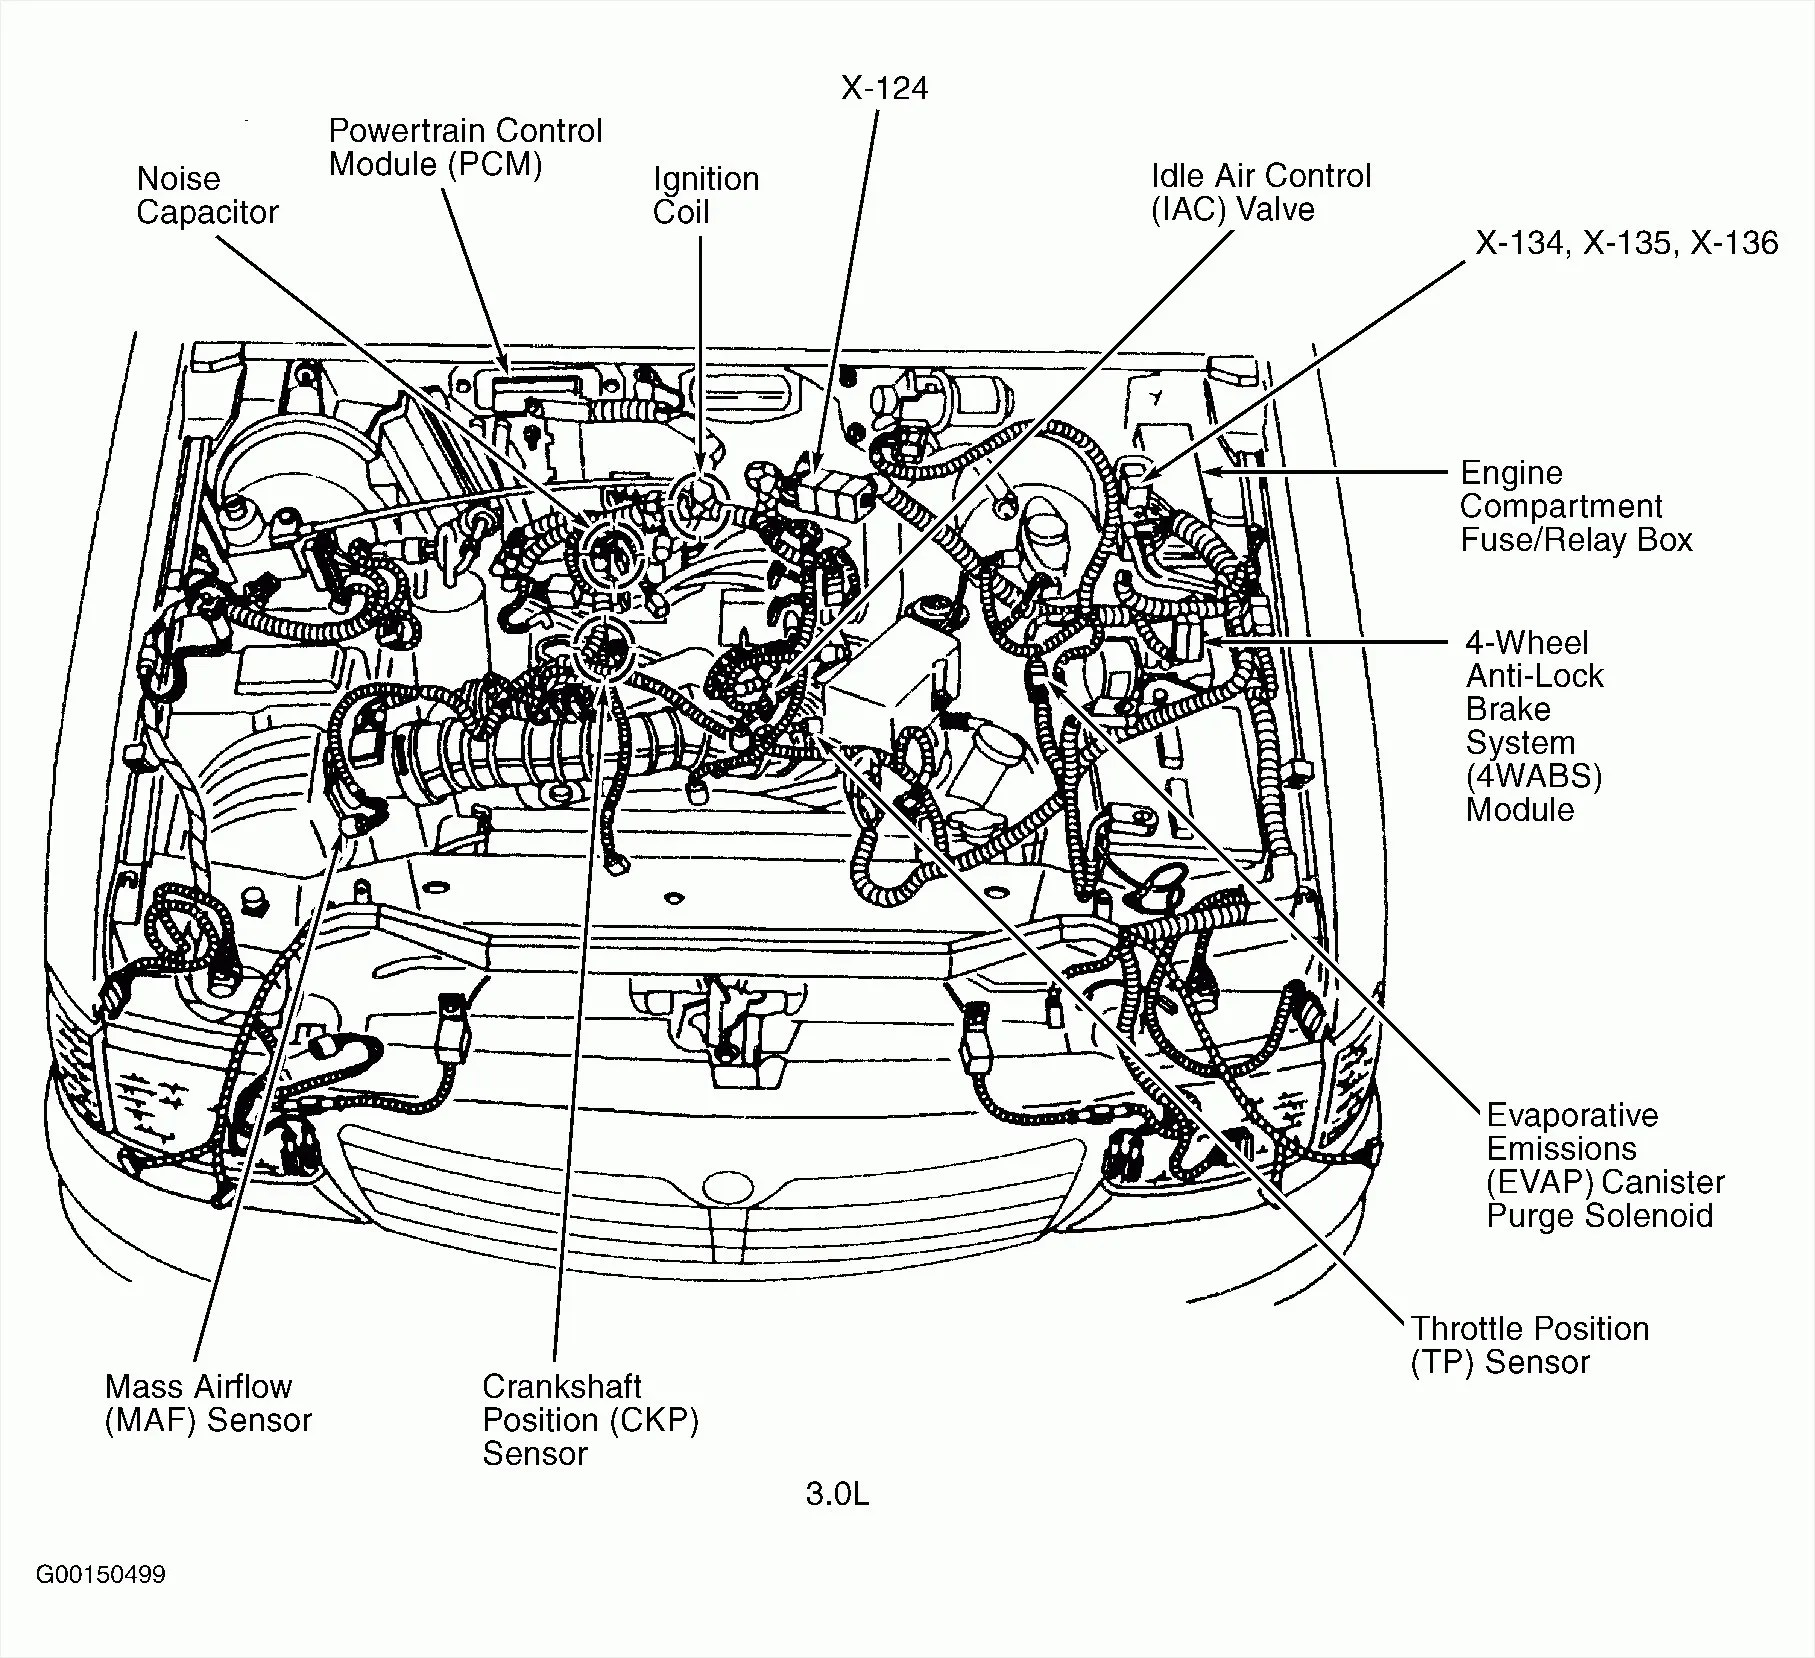 hight resolution of pontiac 3 1 engine diagram wiring diagram operations 1989 pontiac 3 1 engine diagram